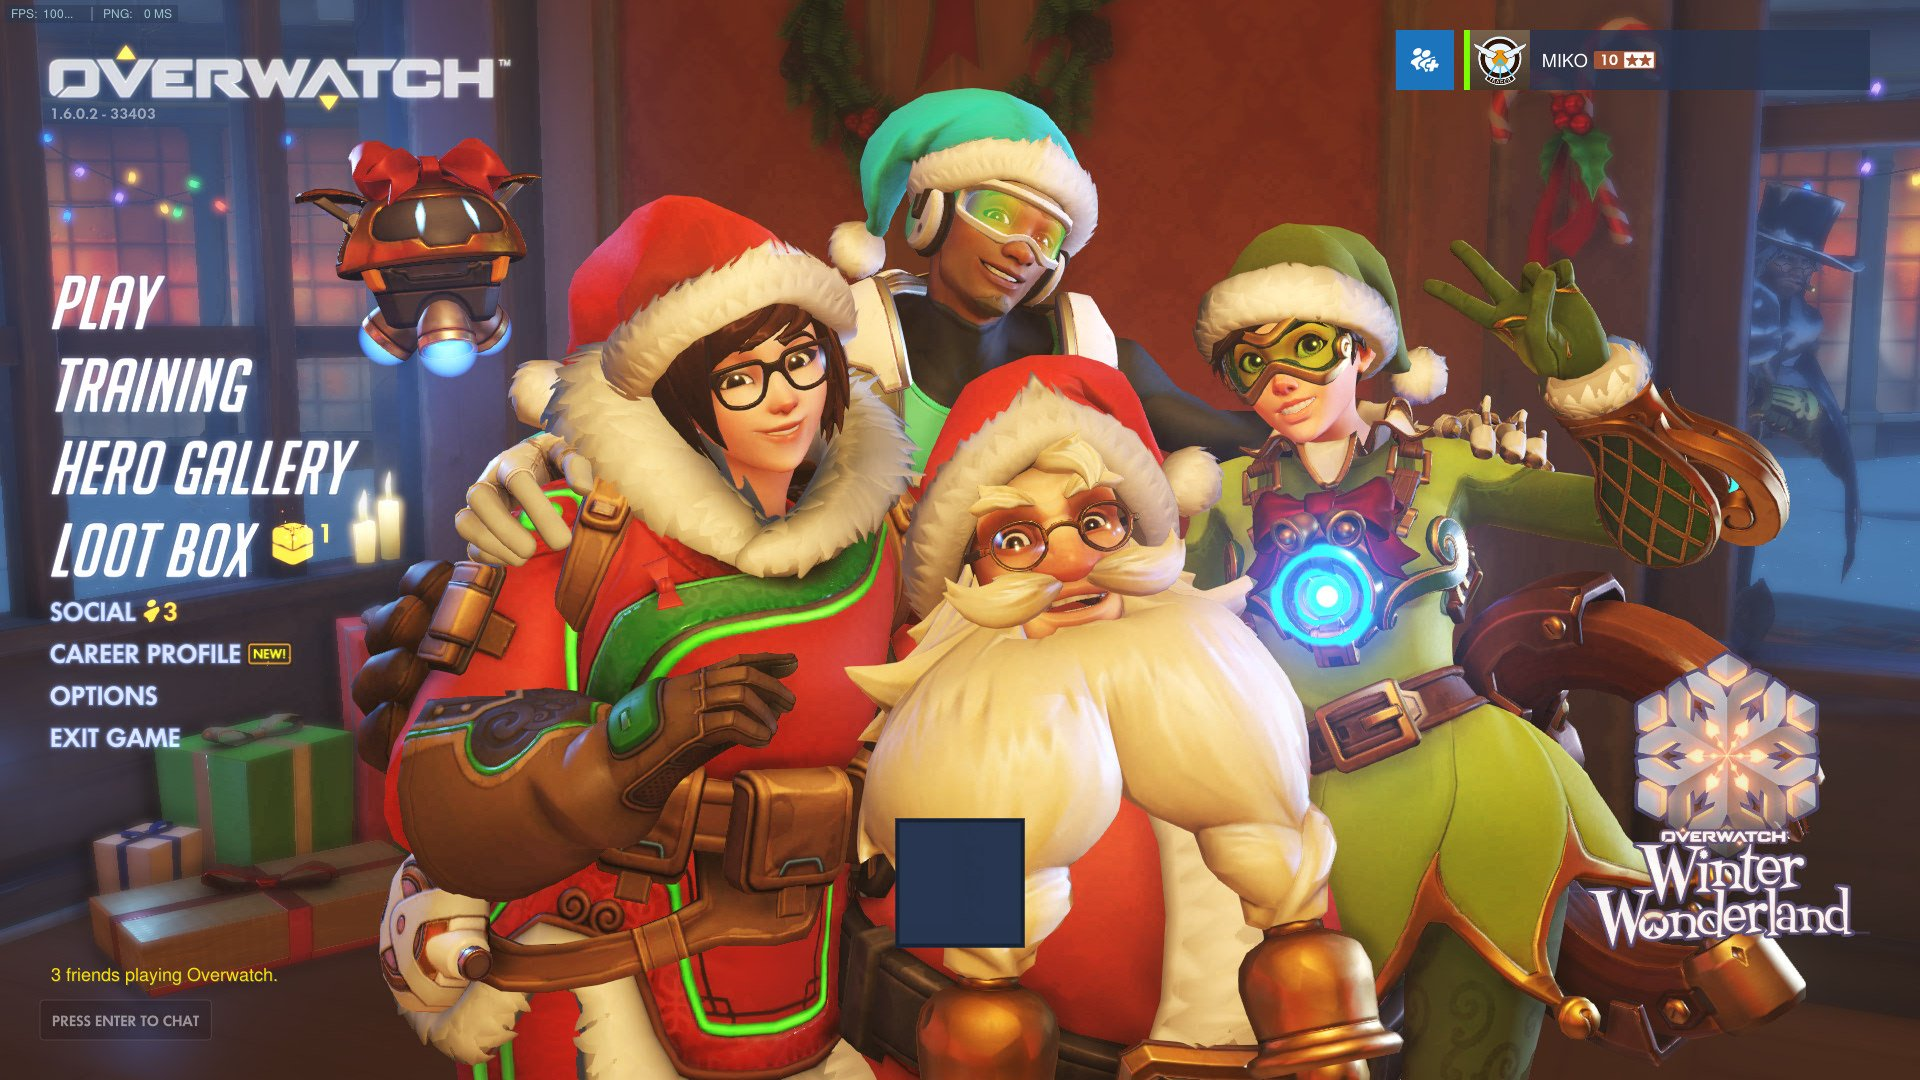 Overwatch : Winter Wonderland